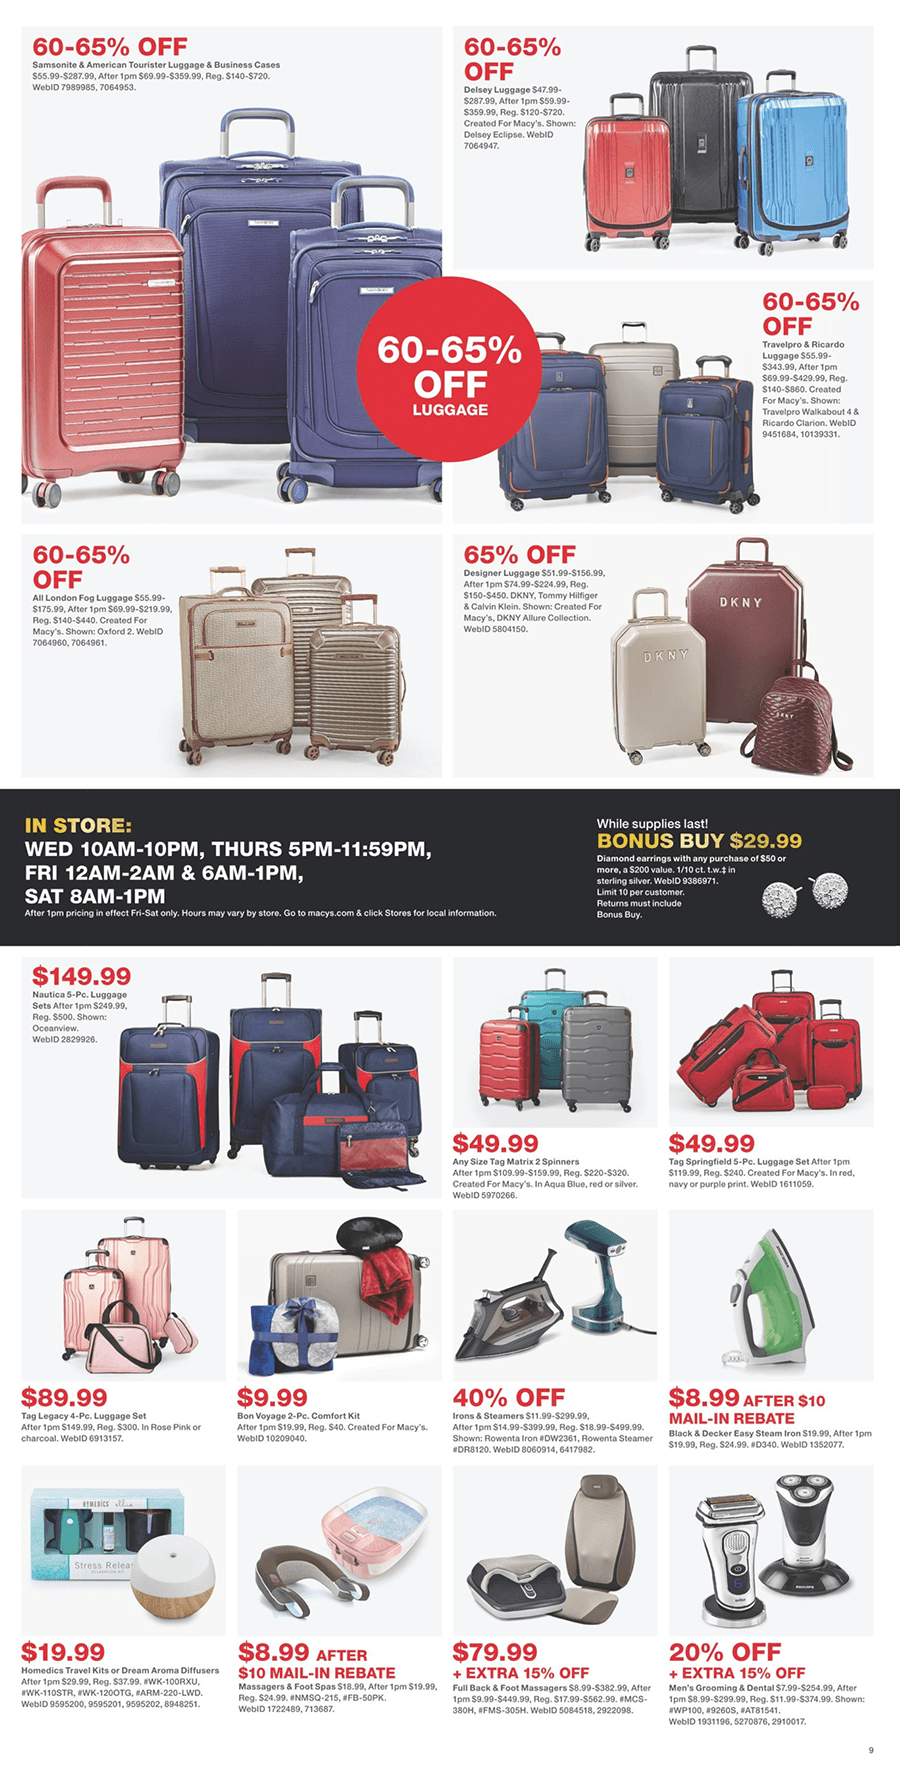 Macy's Black Friday 2019 Page 9